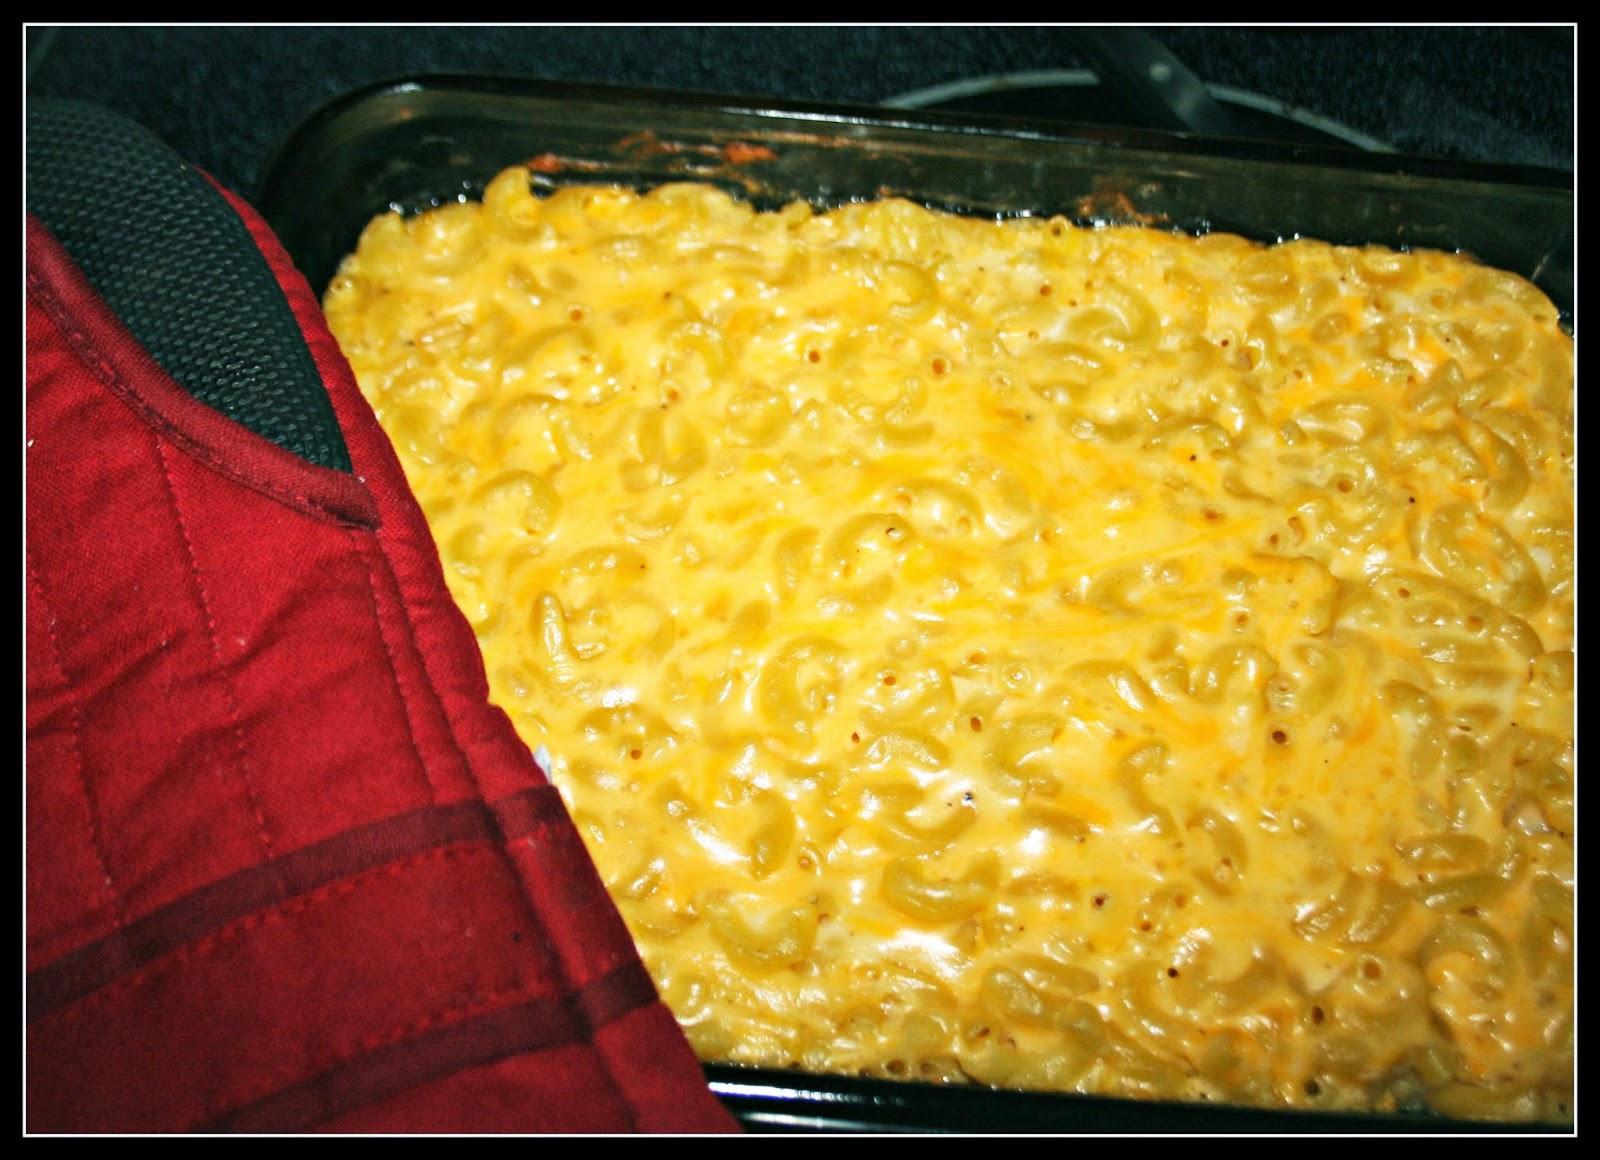 ... tried it. How about you, readers? Are you a macaroni and cheese fan